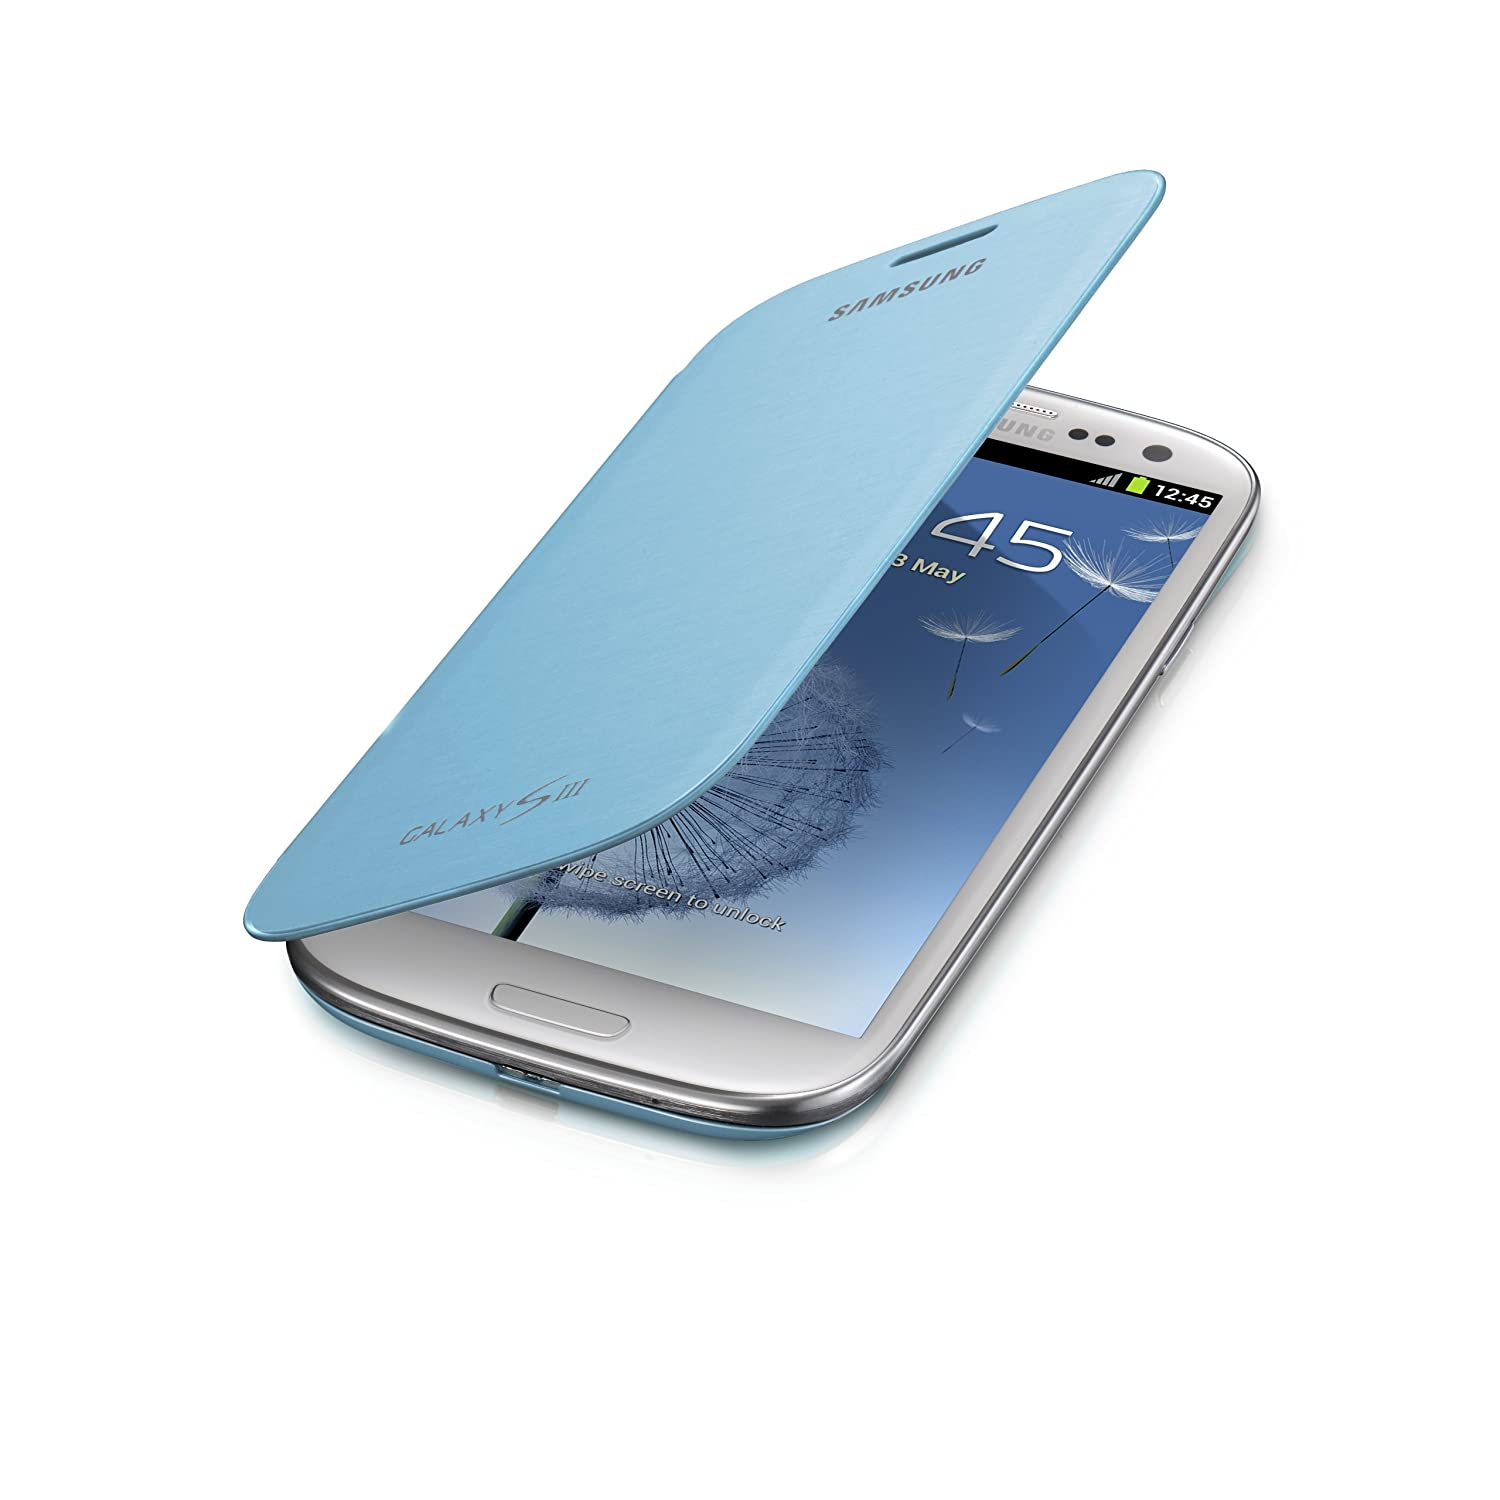 Samsung Flip Cover Case for Samsung Galaxy S3 (Light Blue) $17.09